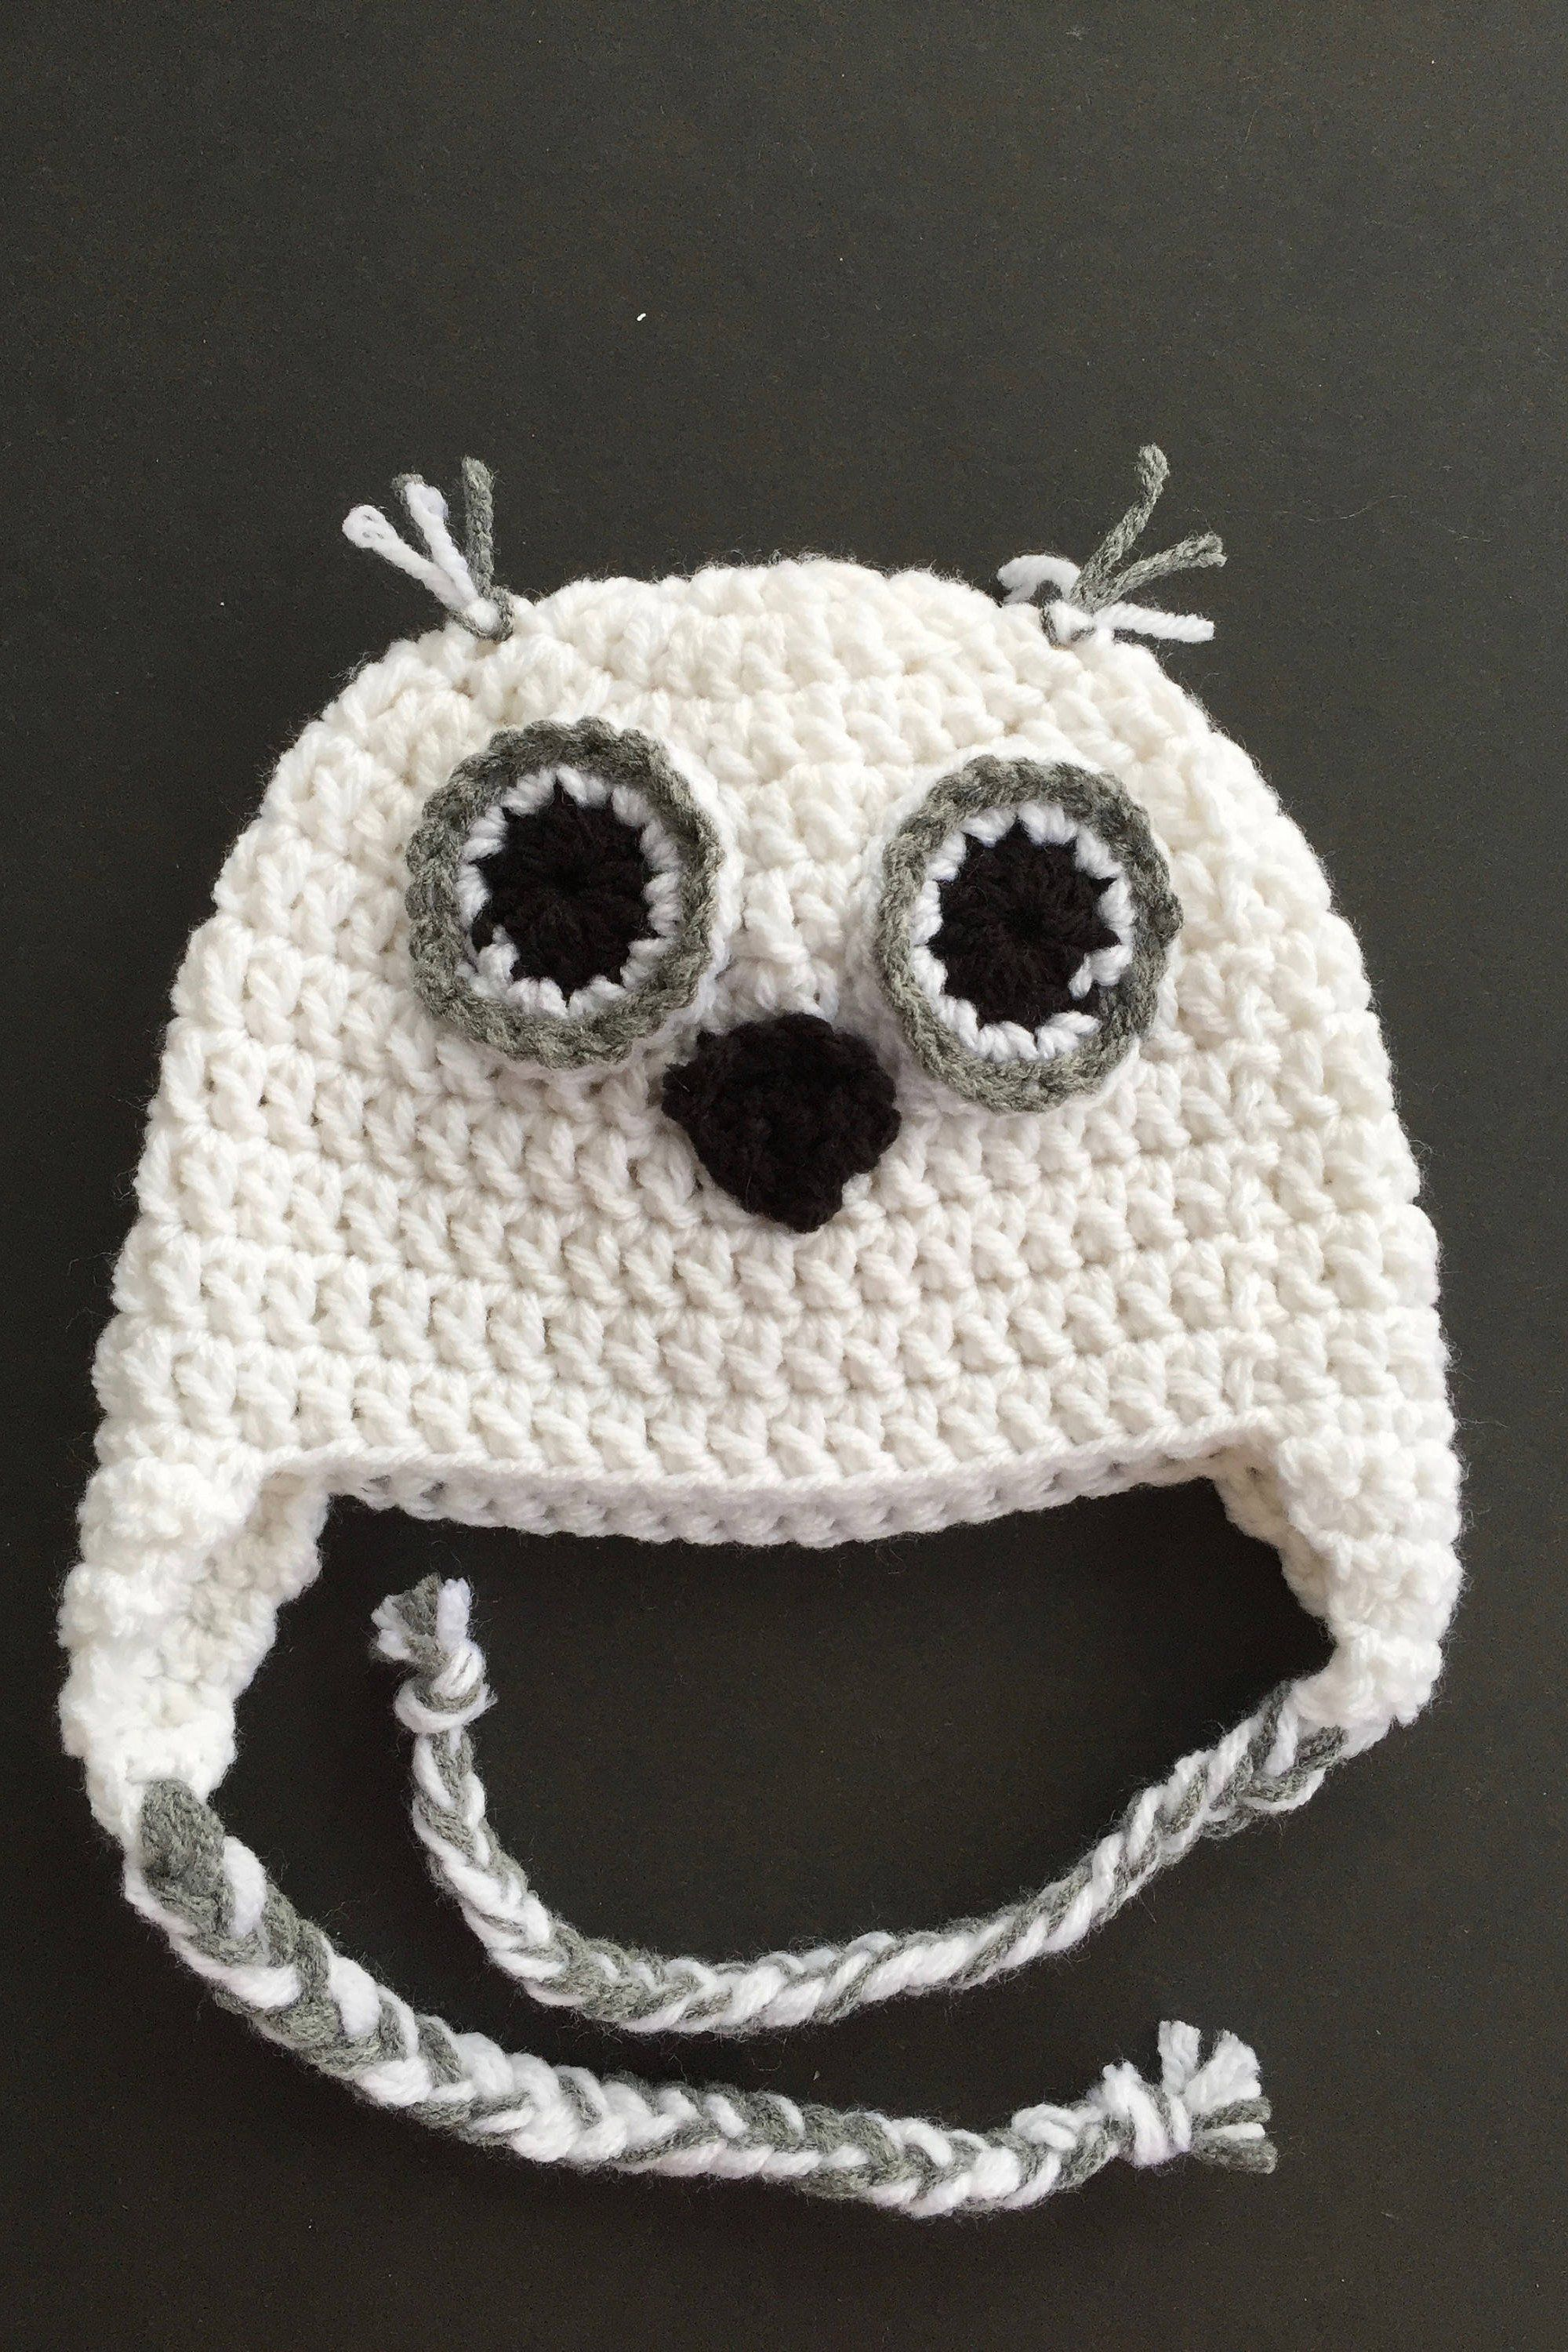 Baby snowy owl hat, inspired by hedwig and harry potter ...